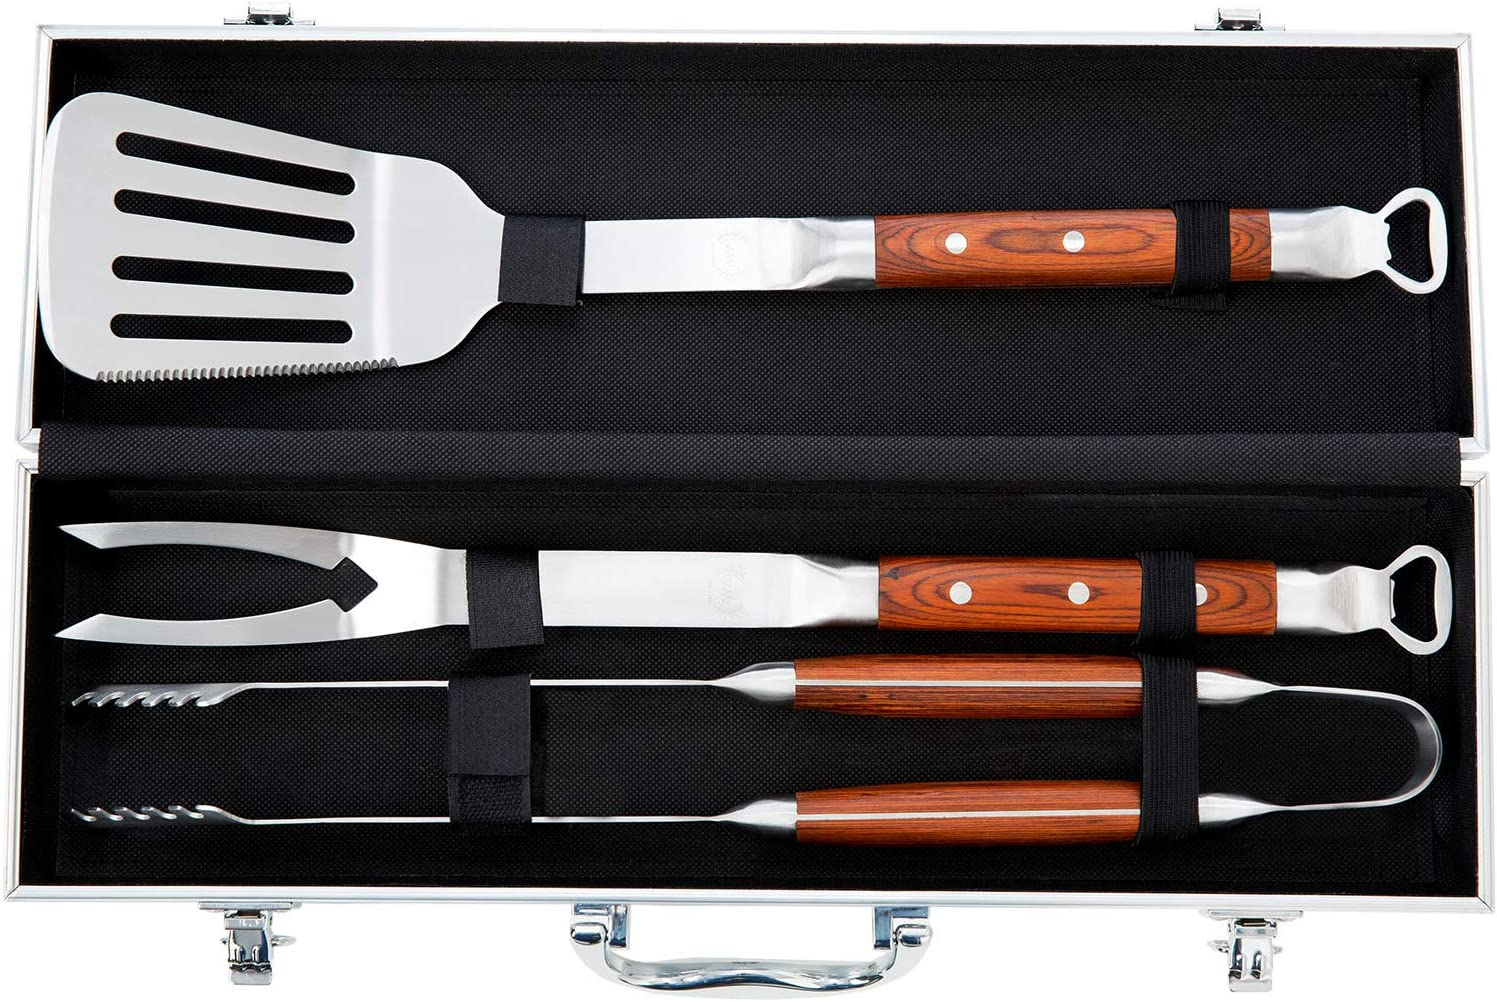 BBQ Tool Set – Grill Tool Set 3pcs – Grill Utensil Set Stainless Steel with Rosewood Handles – BBQ Tool Kit Gift with Carry Case – WareWorks BBQ Utensil Set for Home, Grill, Camping, Travel : Garden & Outdoor